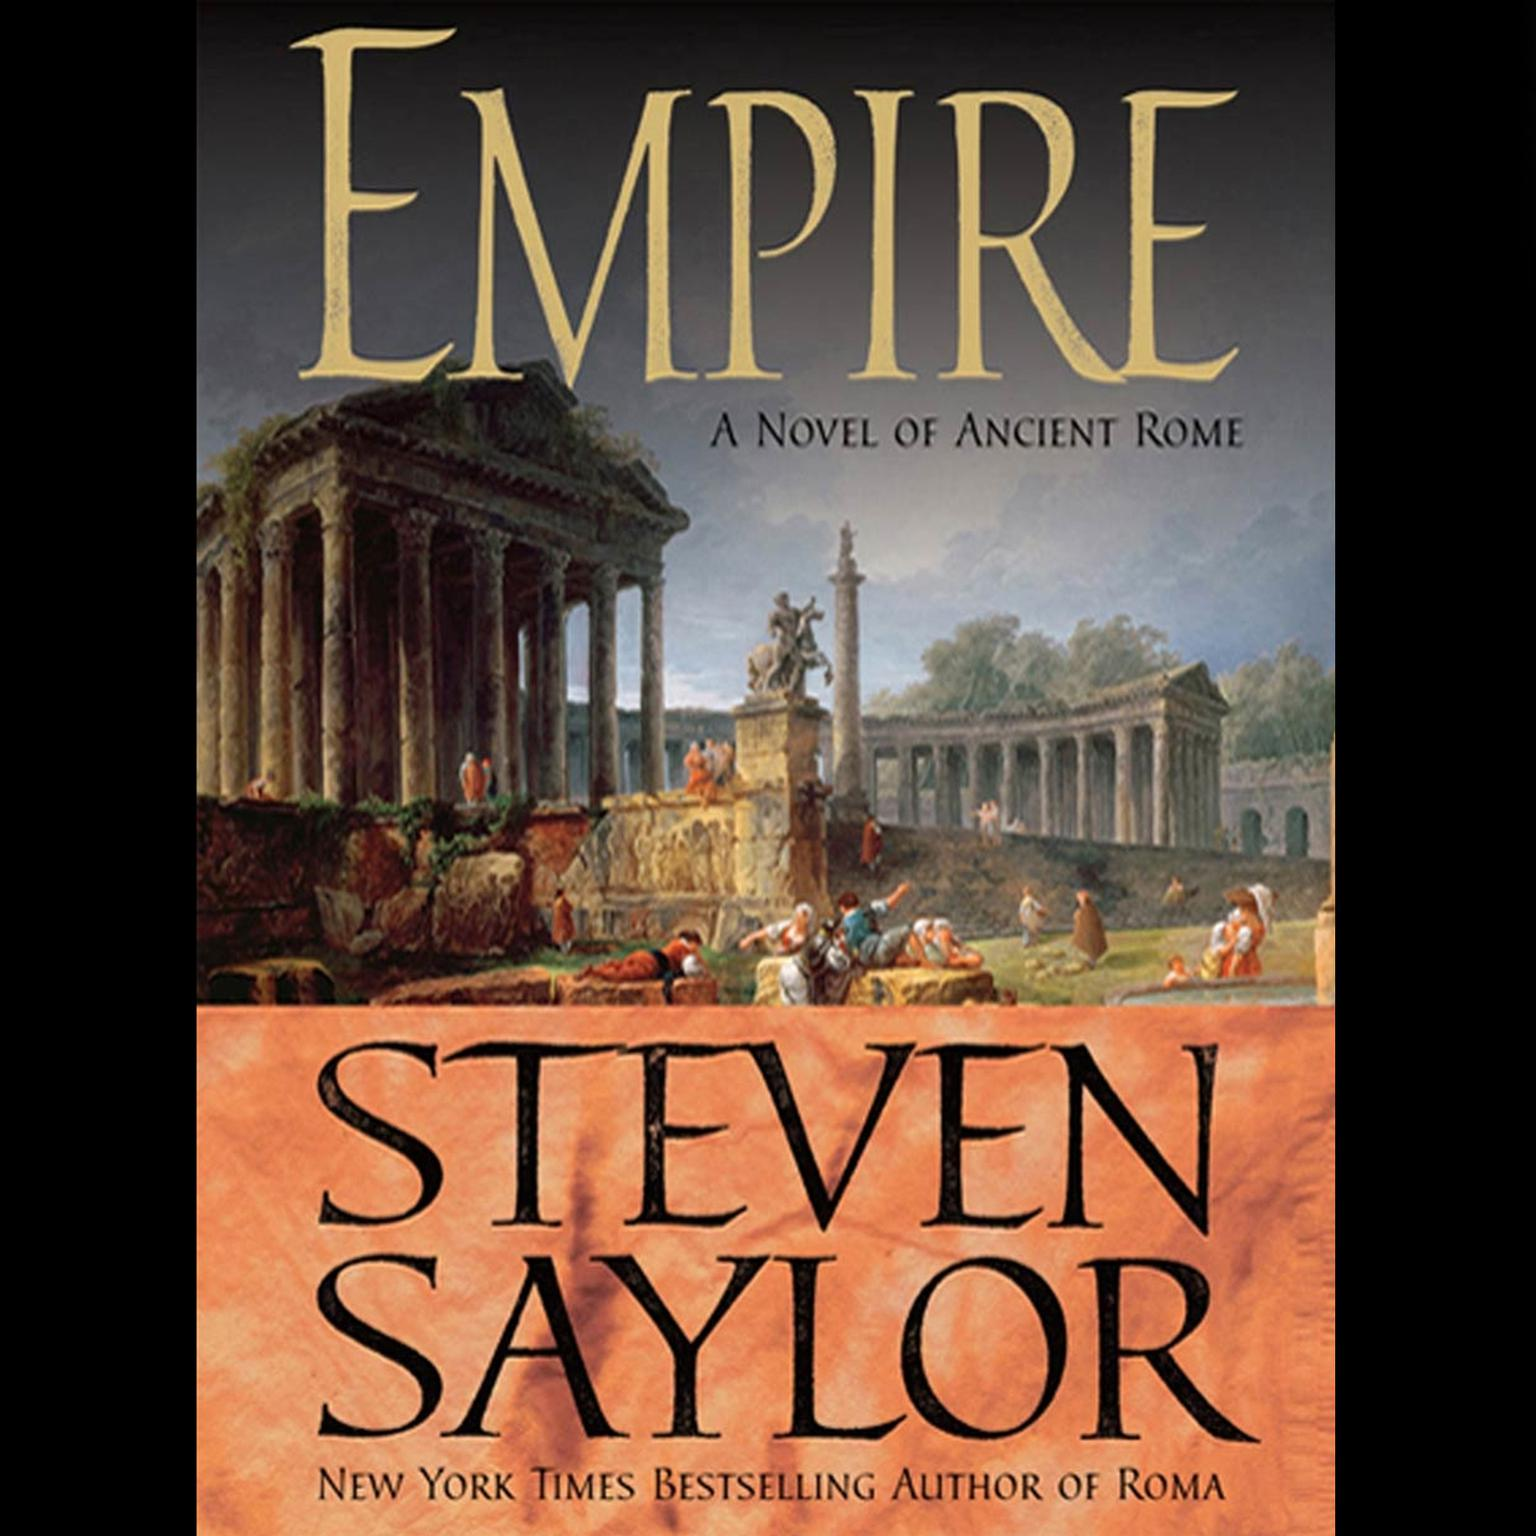 Printable Empire: The Novel of Imperial Rome Audiobook Cover Art